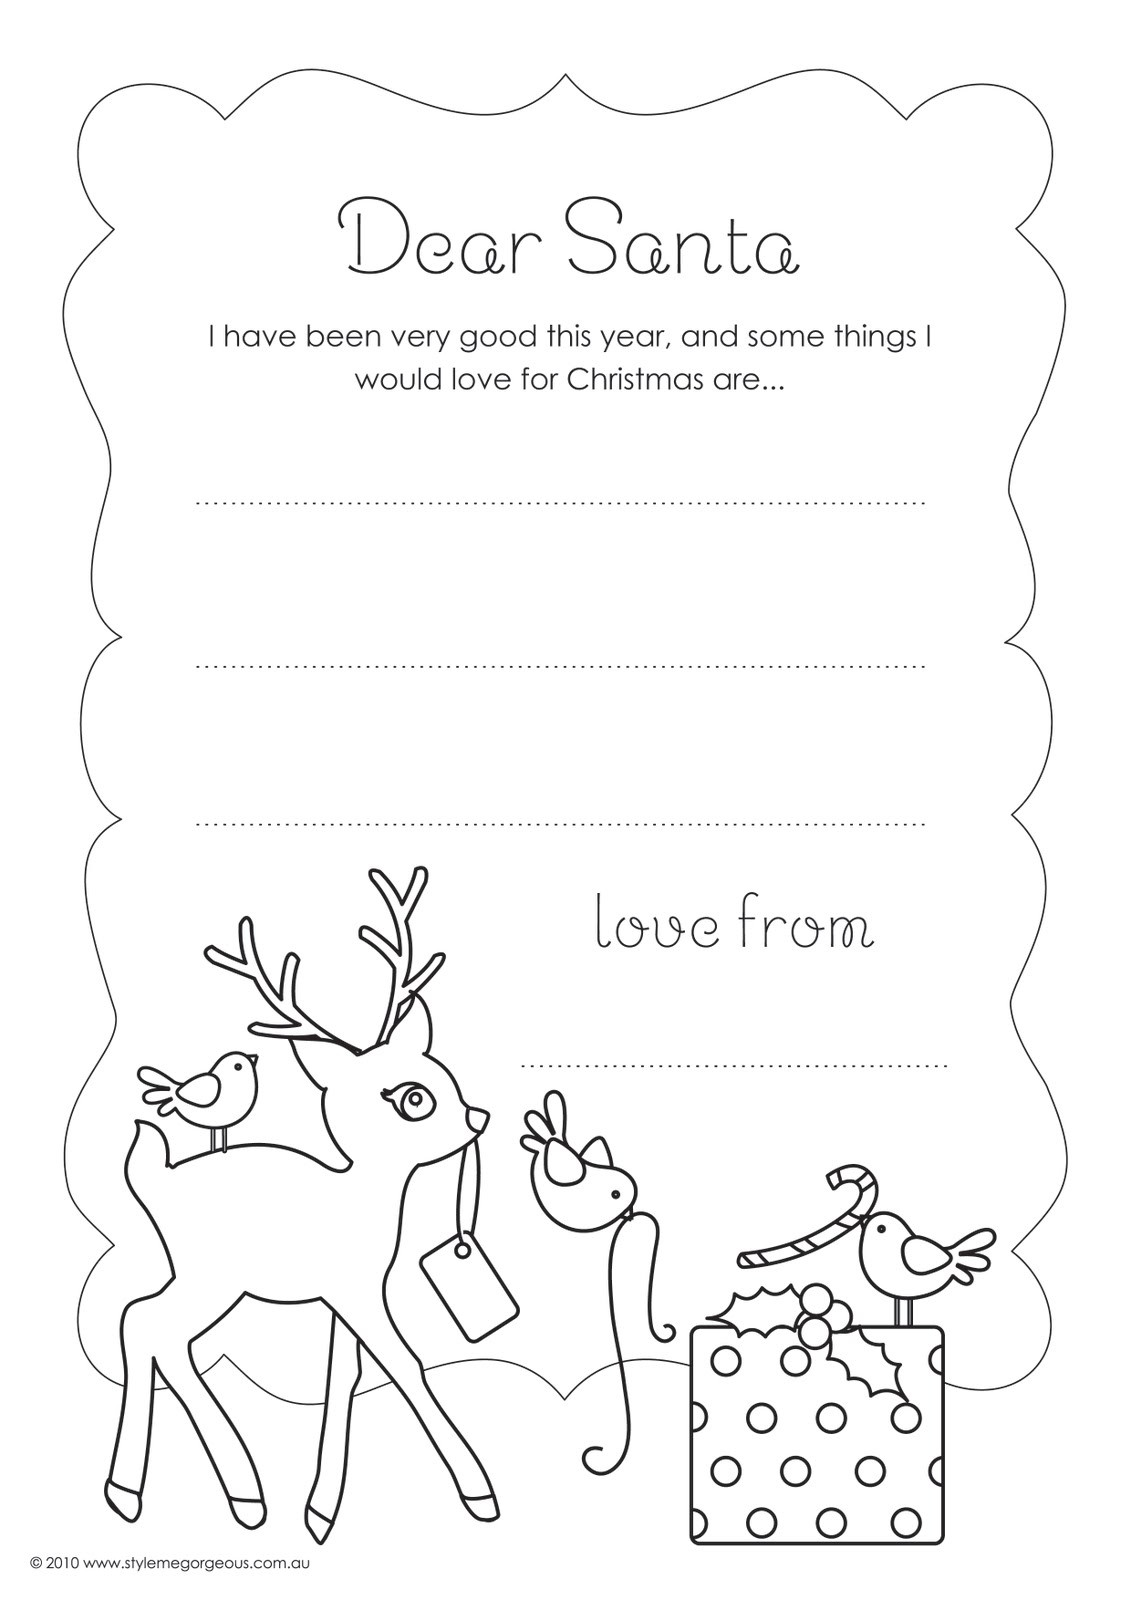 Dear Santa Letter Coloring Page With Fiscalreform